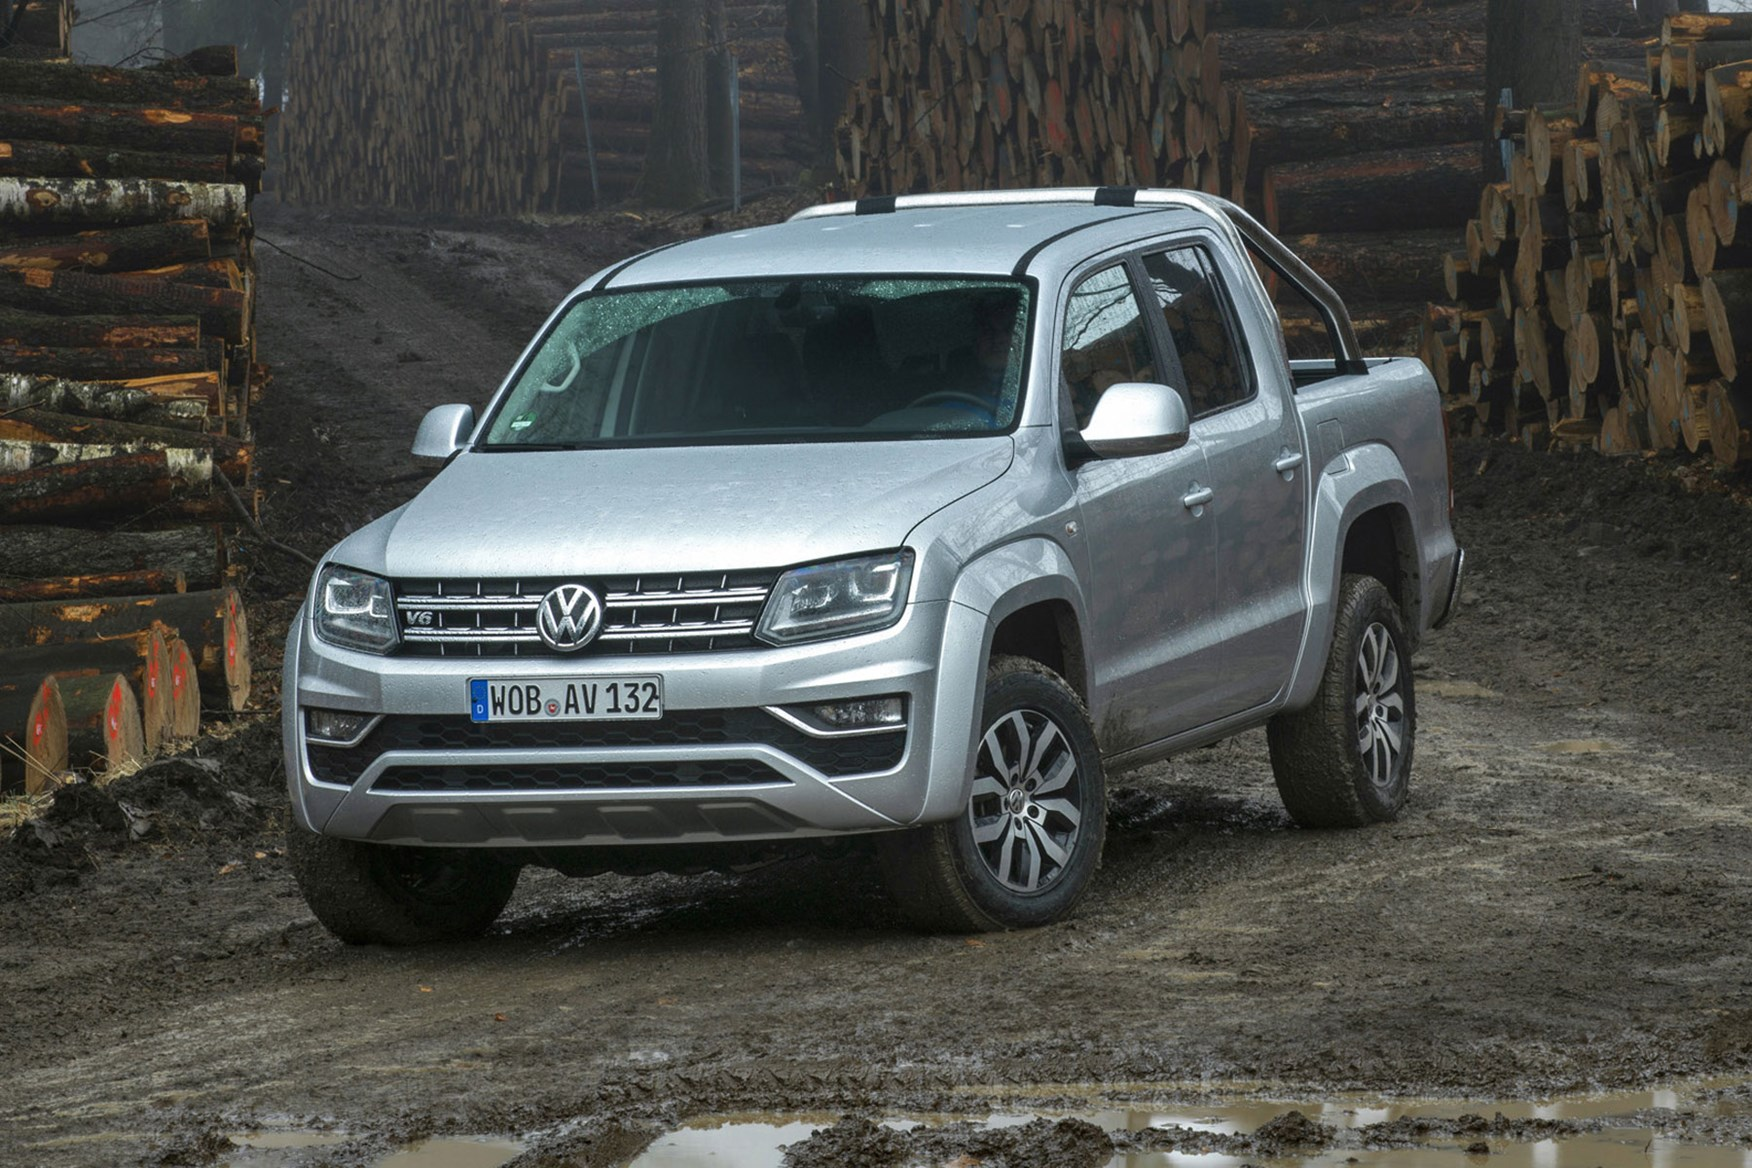 VW Amarok V6 Trendline 204hp review - front-view, off-road, silver